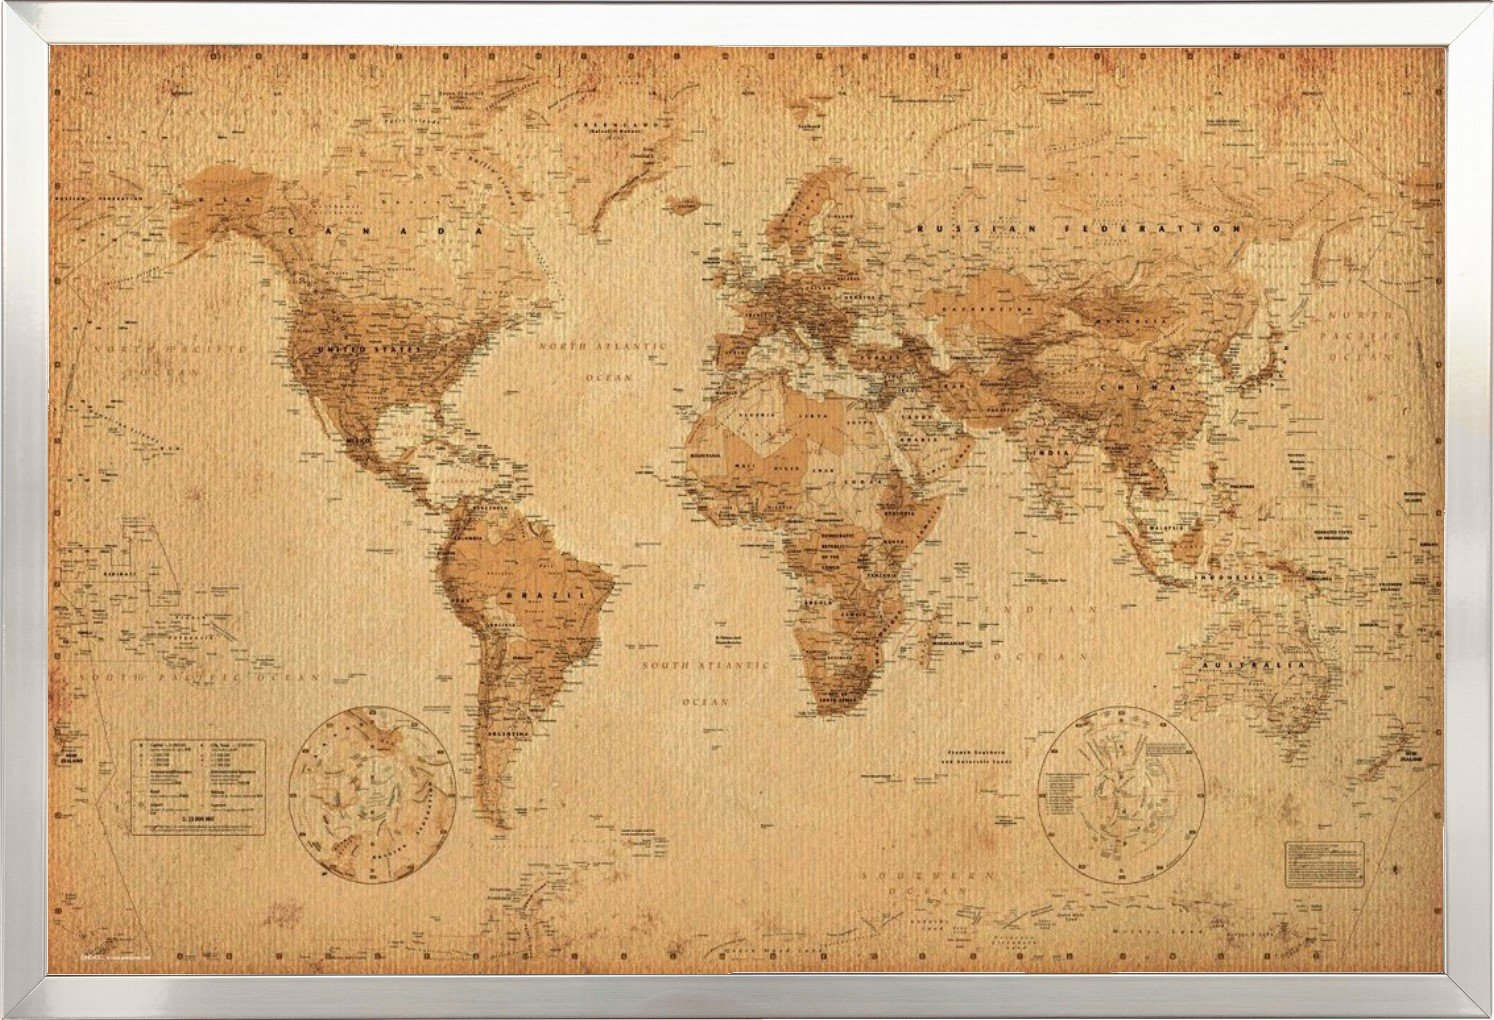 World map vintage style poster print amazon home kitchen gumiabroncs